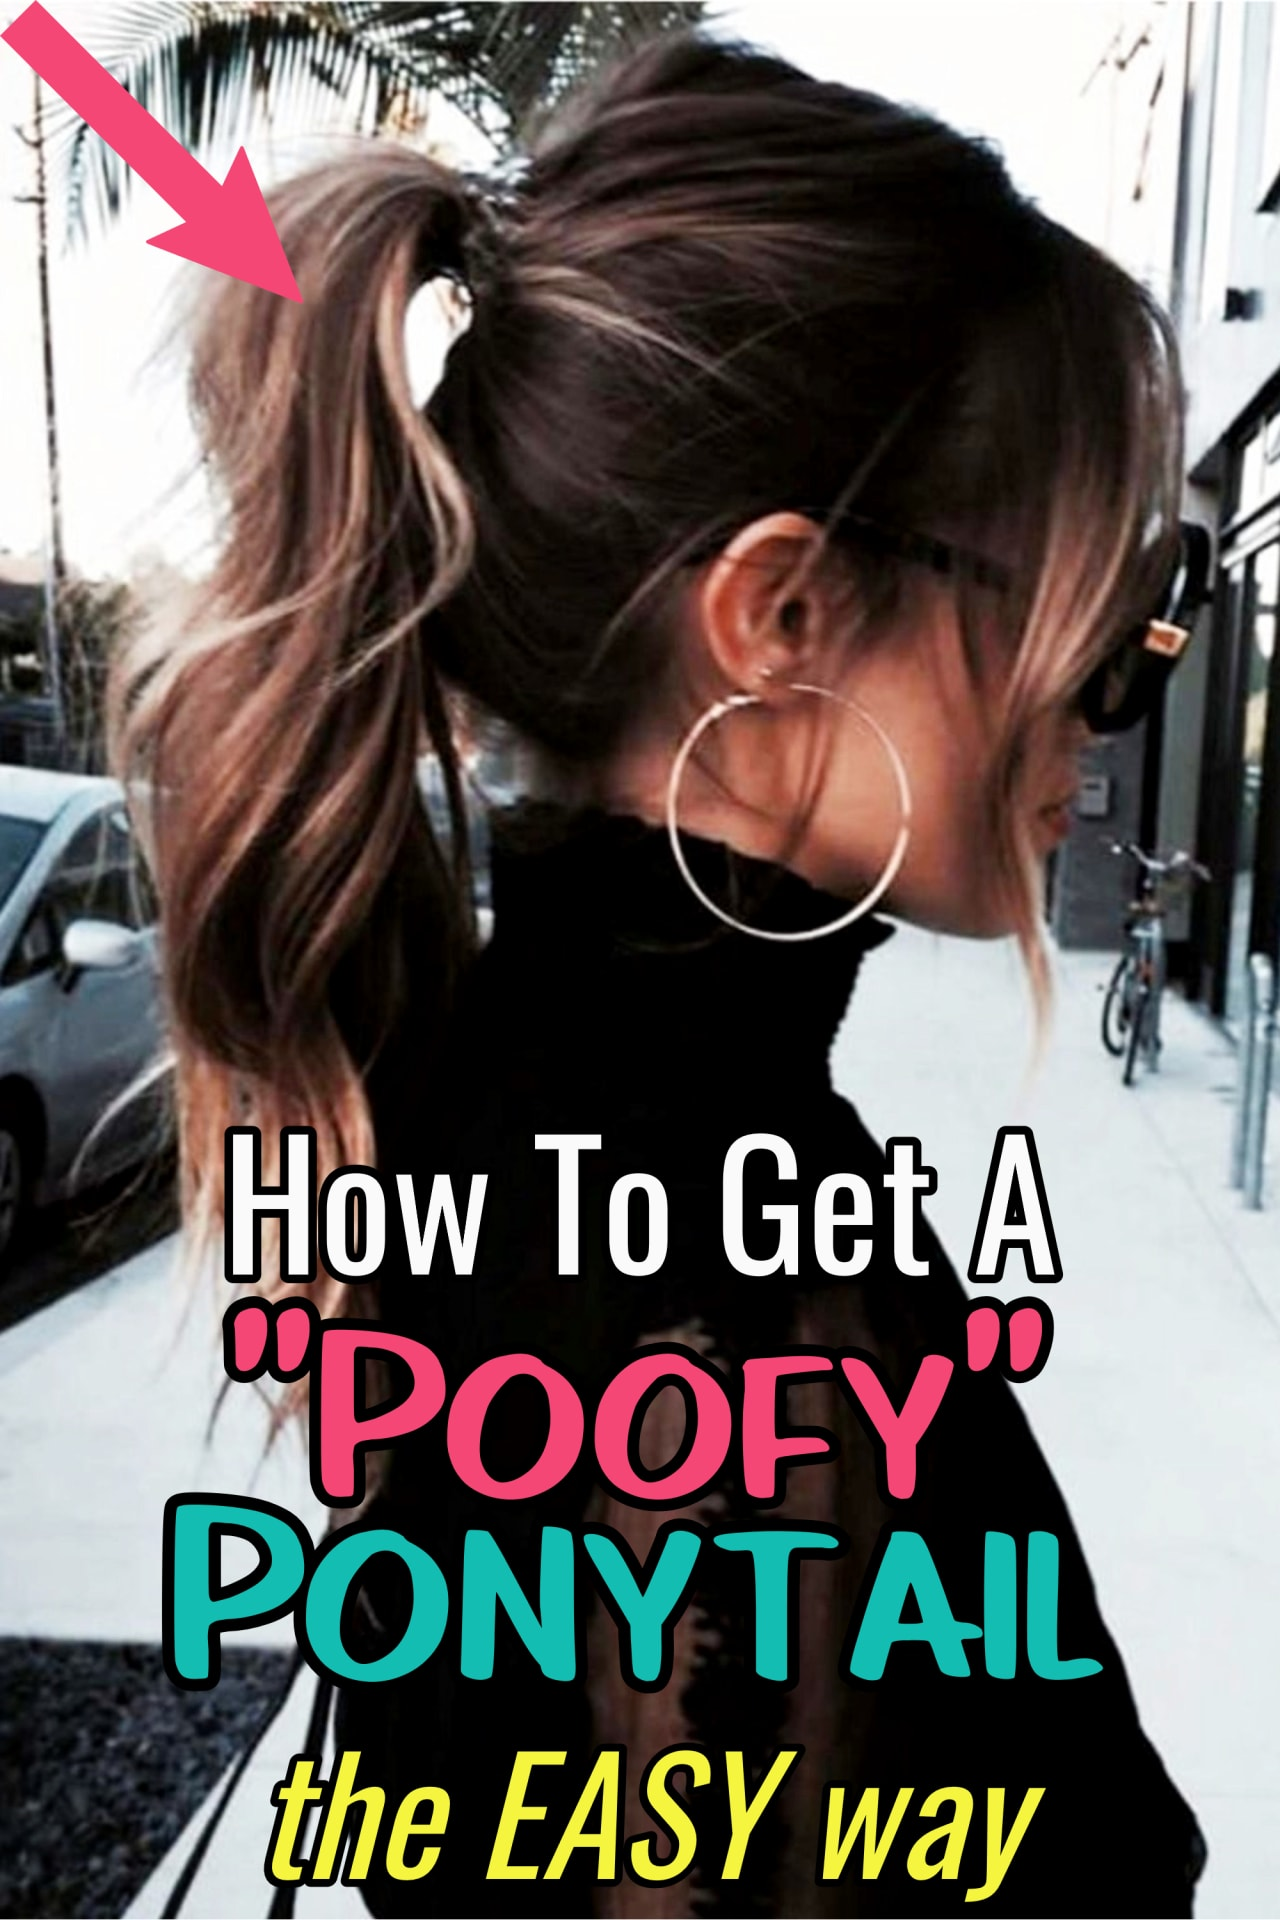 Poofy Ponytail Tutorial - how to get a poofy ponytail the EASY way!  Wondering how to do a poofy ponytail or how to make YOUR ponytail look poofy?  These cute and easy ponytails for medium length hair (or long hair) are THE way to get a poofy high ponytail.  Get simple instructions and see more poofy ponytail hairstyles...